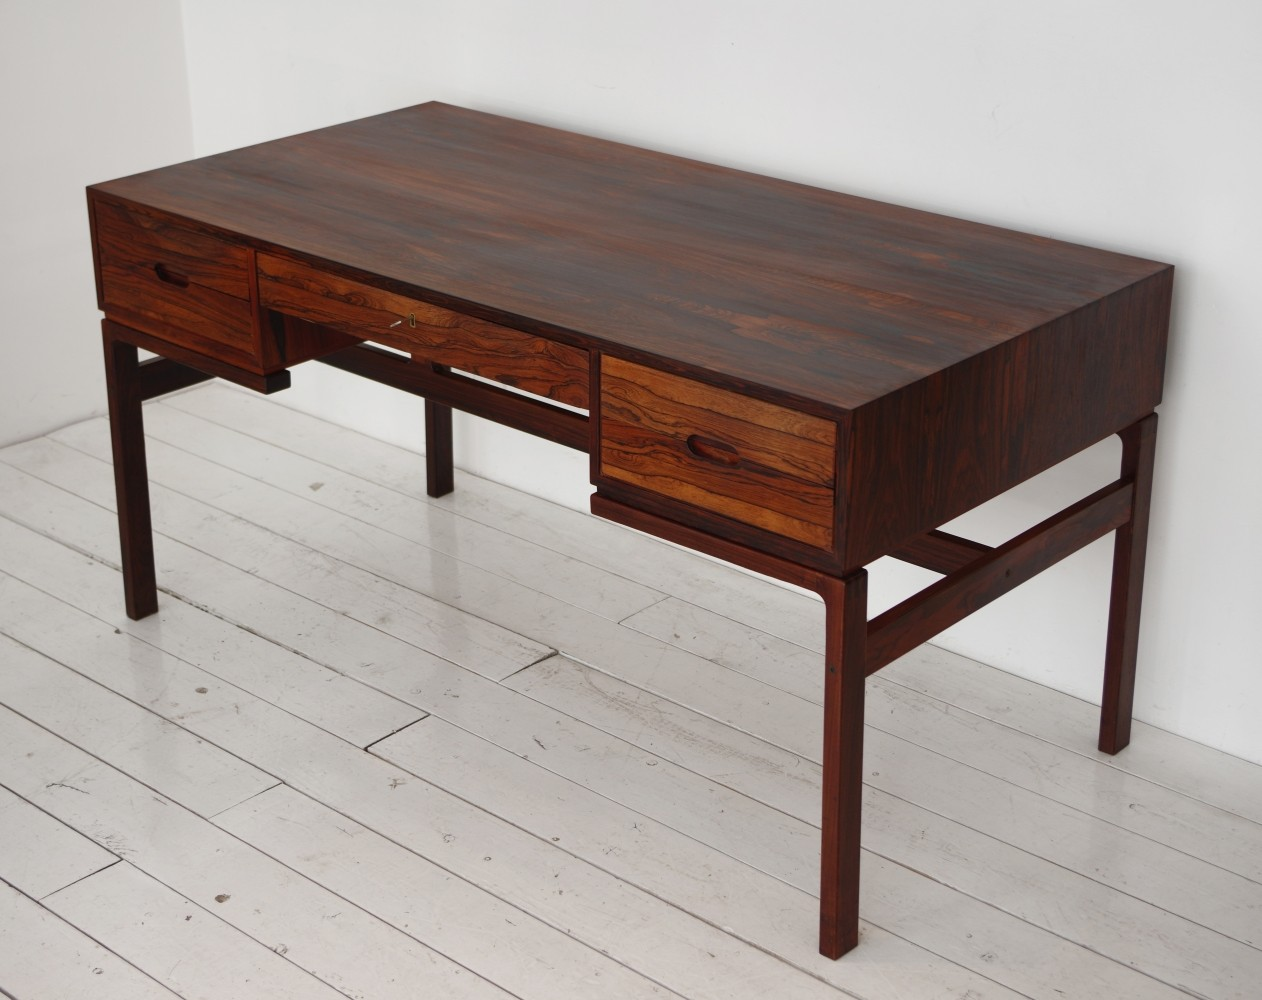 Rosewood Model 80 Writing Desk from the fifties by Arne Wahl Iversen for Vinde Møbelfabrik